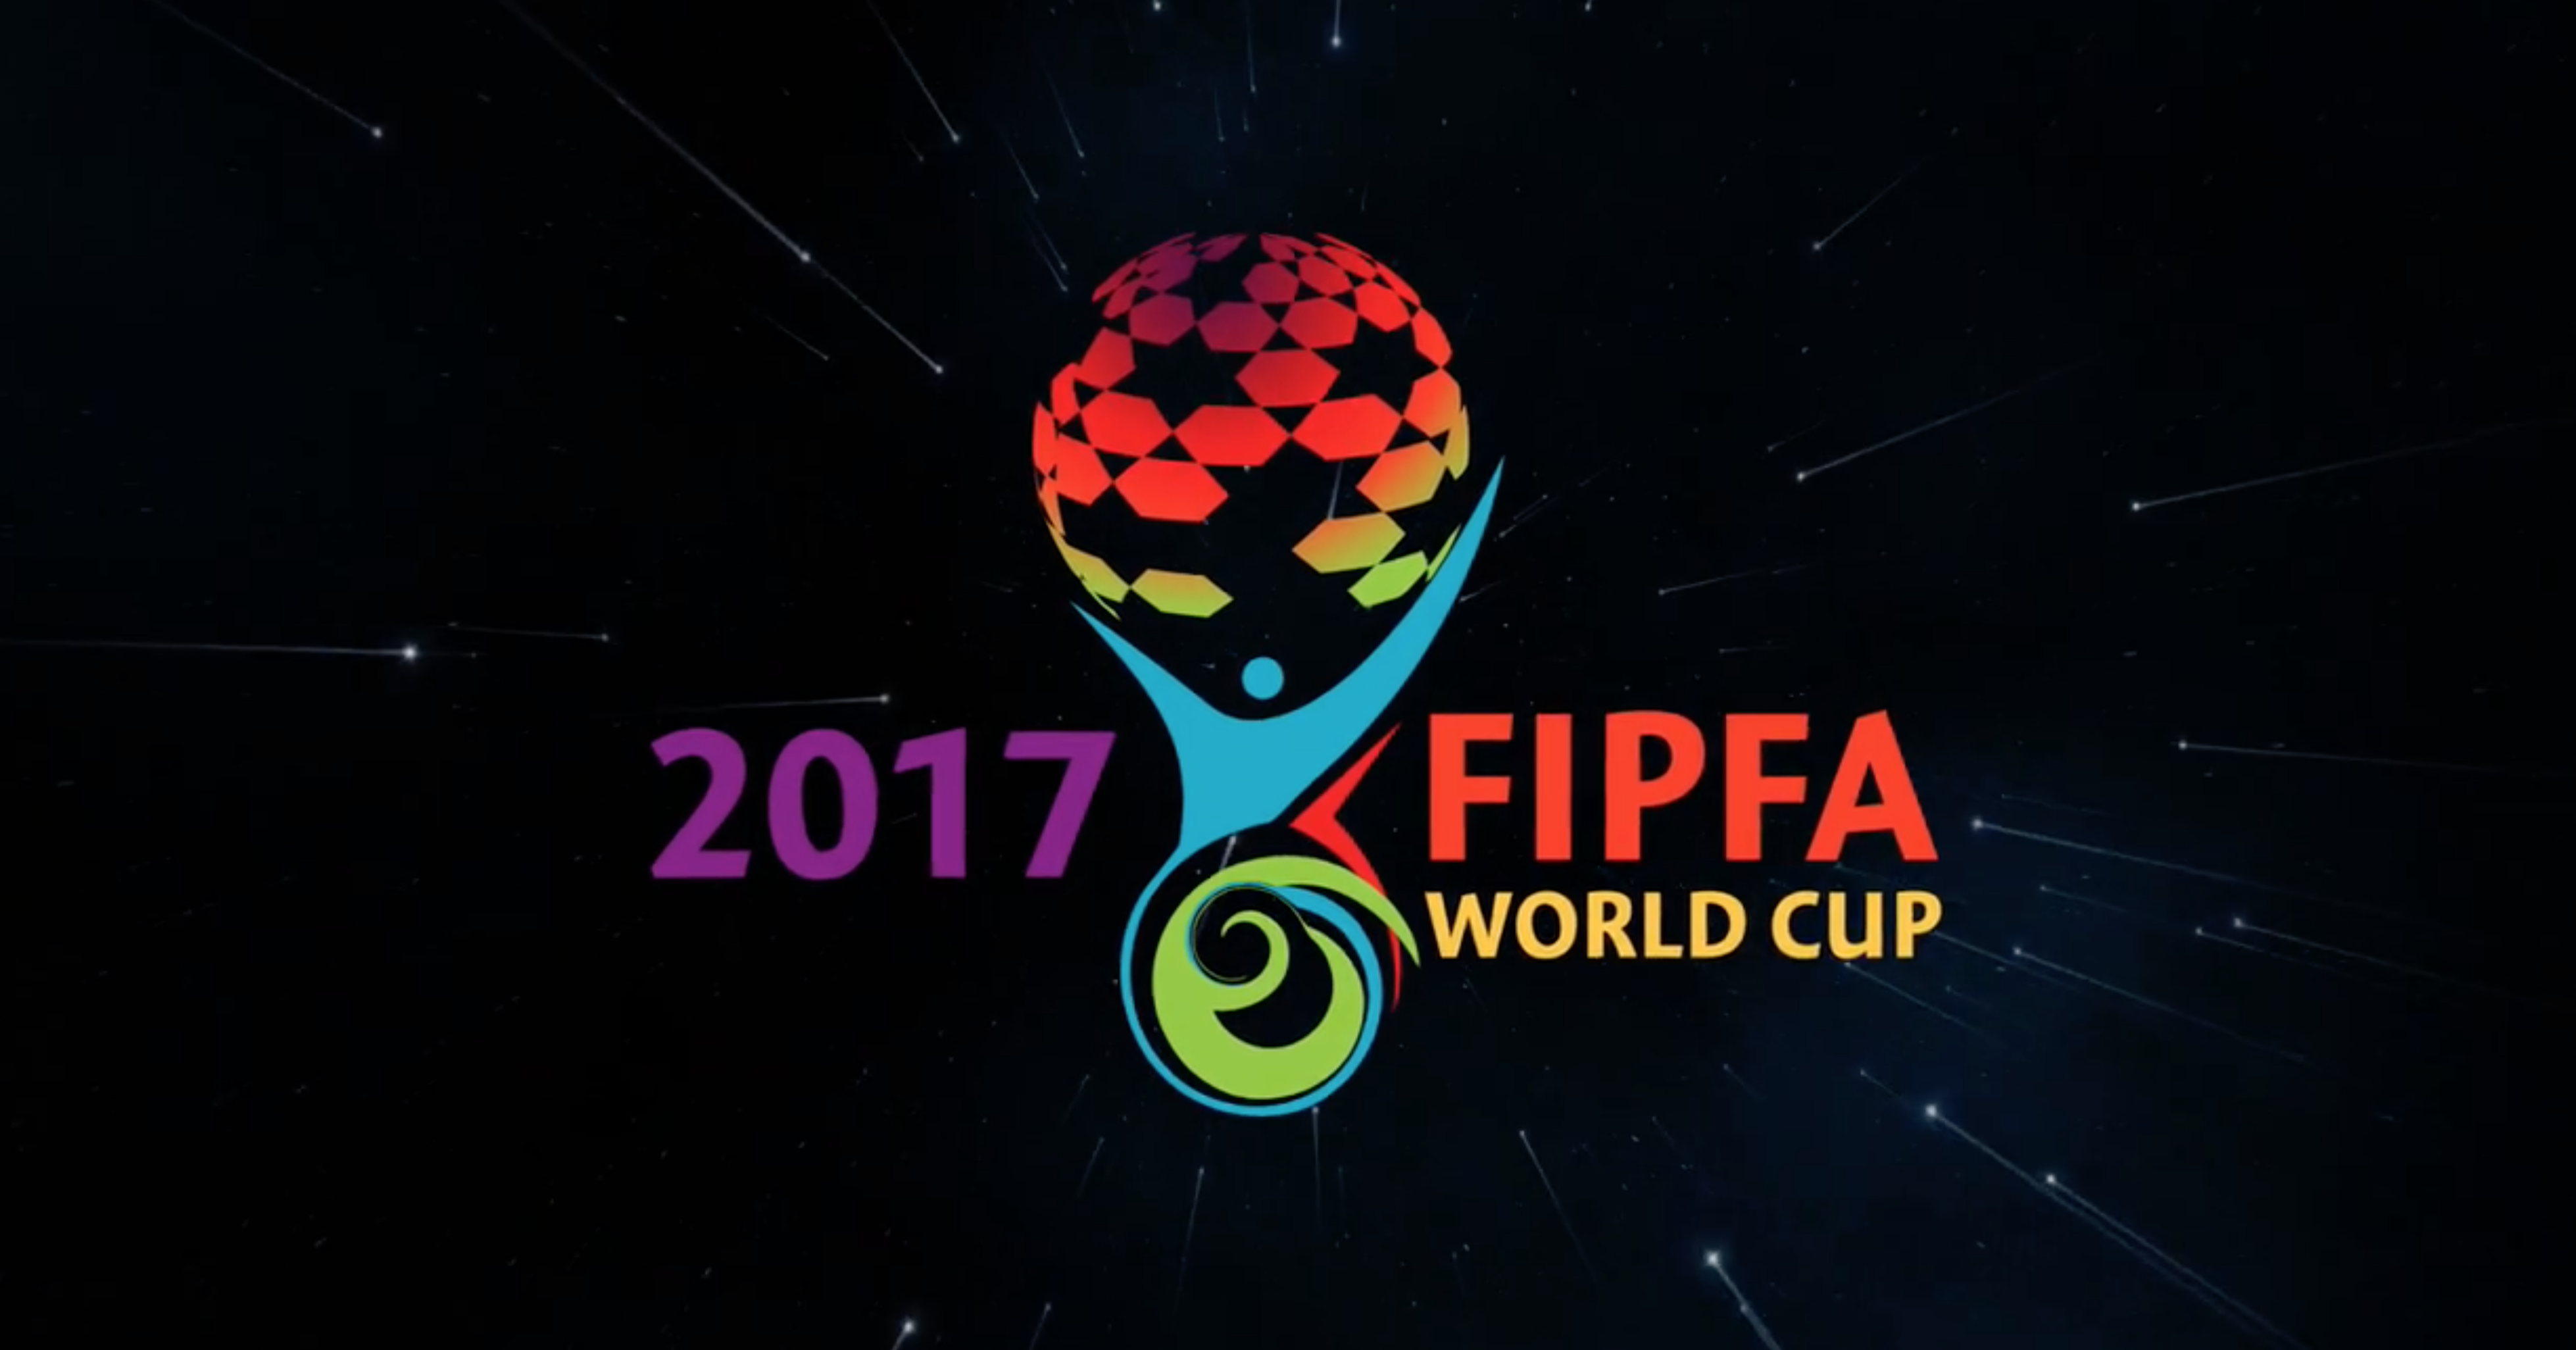 FIPFA World Cup 2017